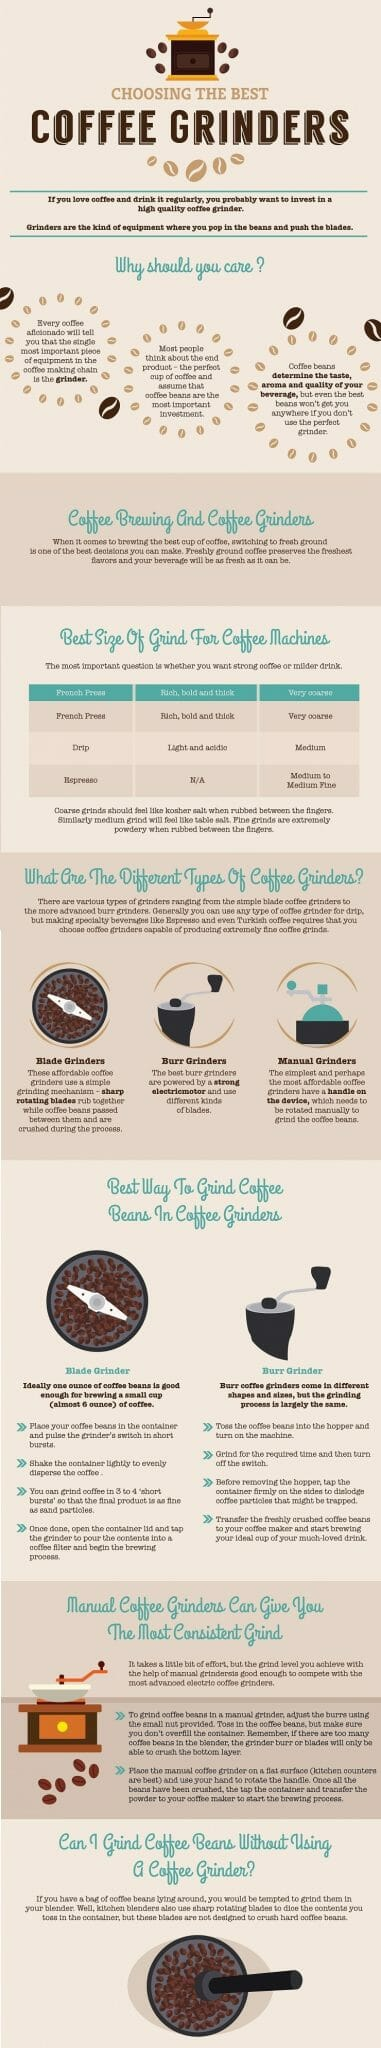 choosing the best coffee grinders infographic scaled scaled